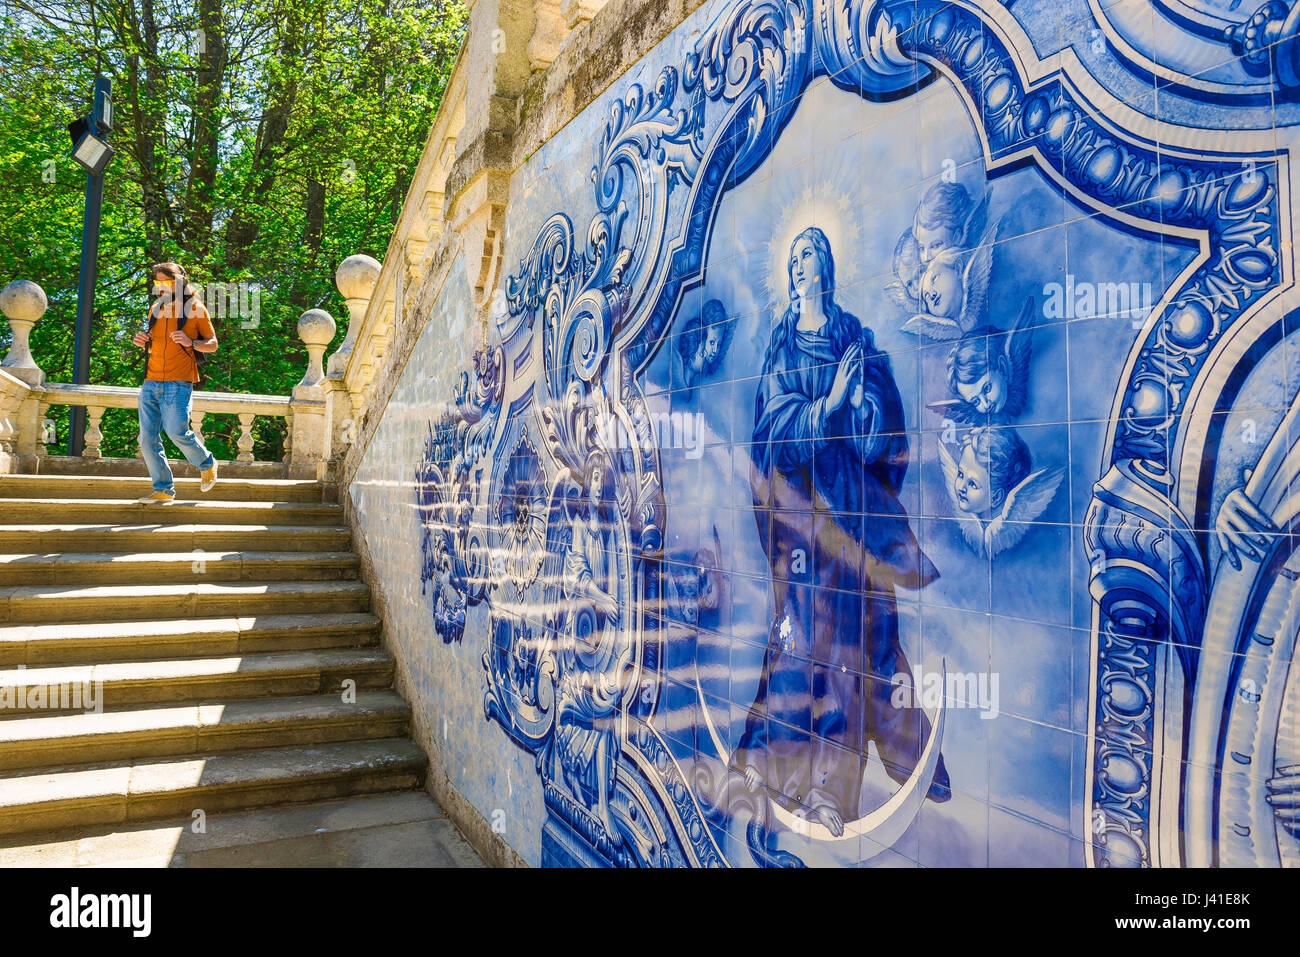 Portugal blue tiles, a man descends the azulejos decorated Baroque stairway leading to the Nossa Senhora dos Remedios - Stock Image